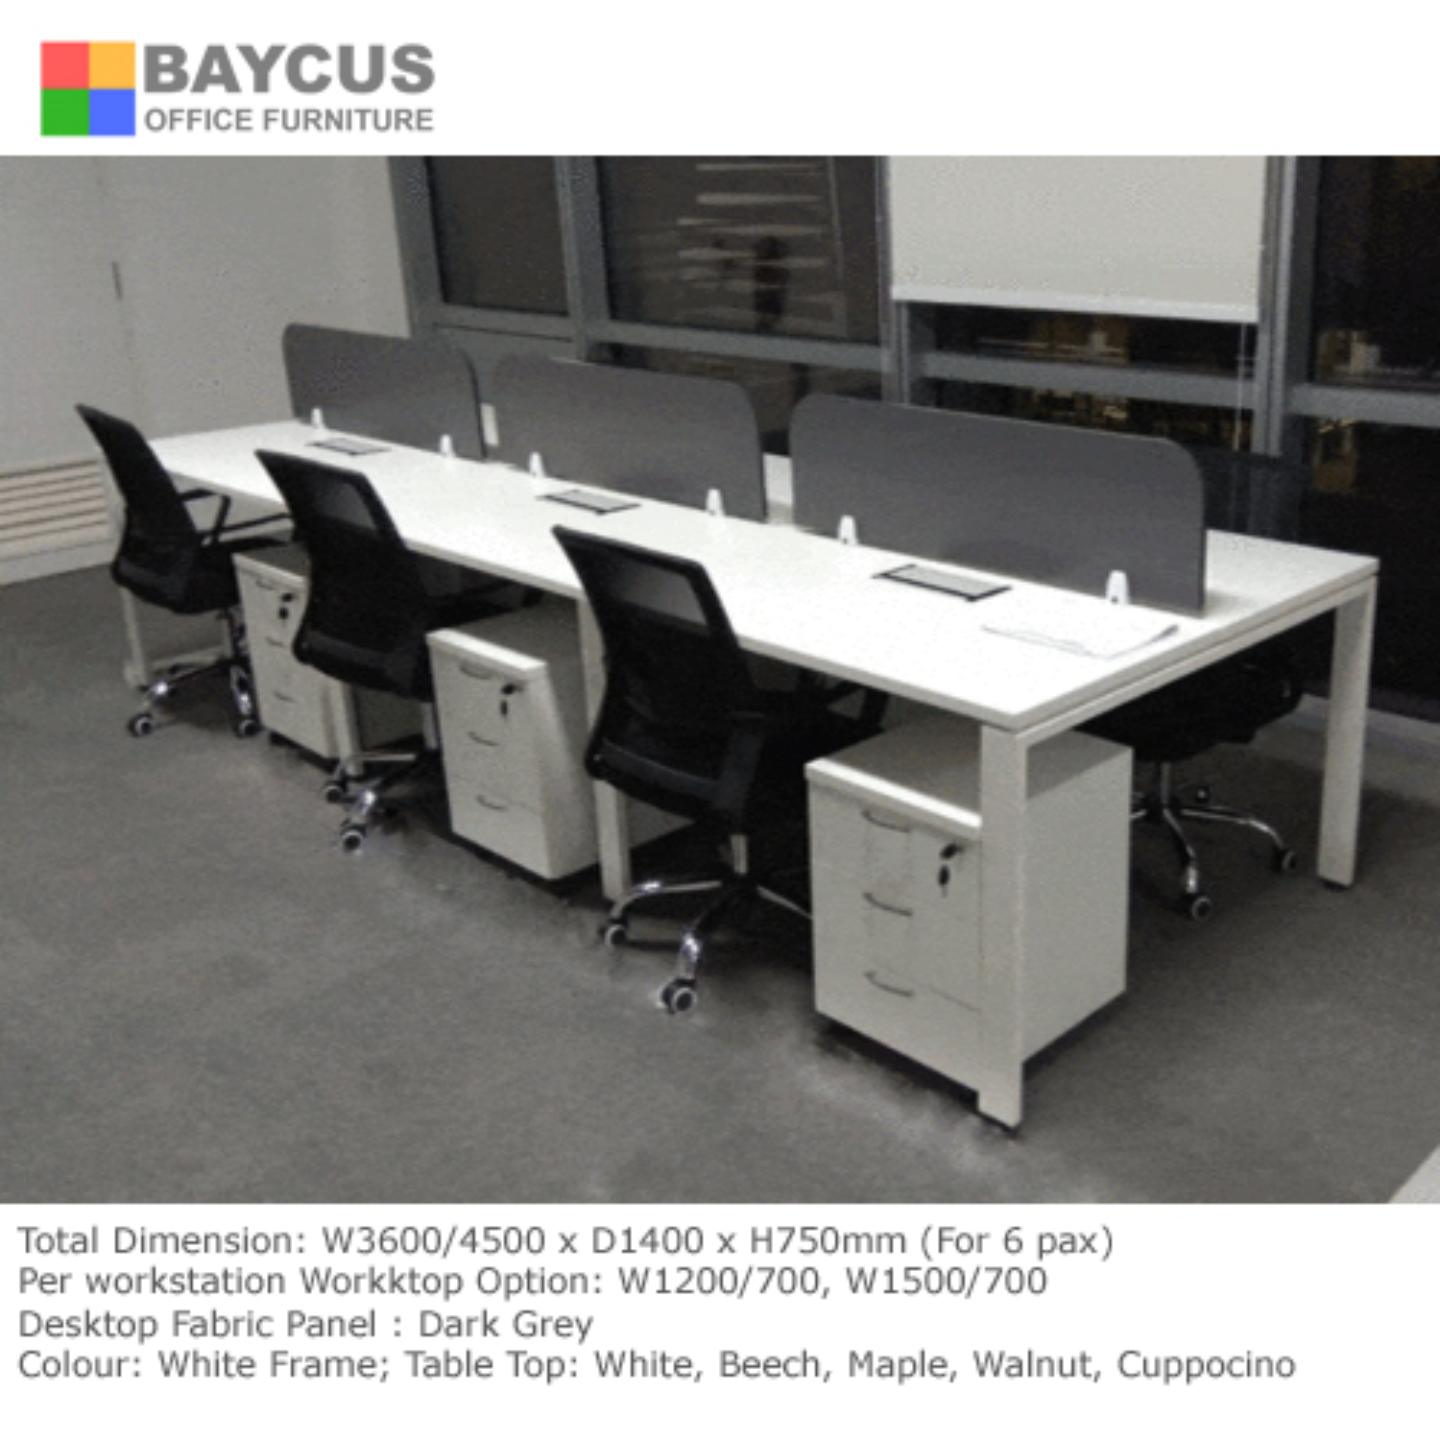 BS 1.5m x 0.7m Open Concept Workstation for 6 Pax